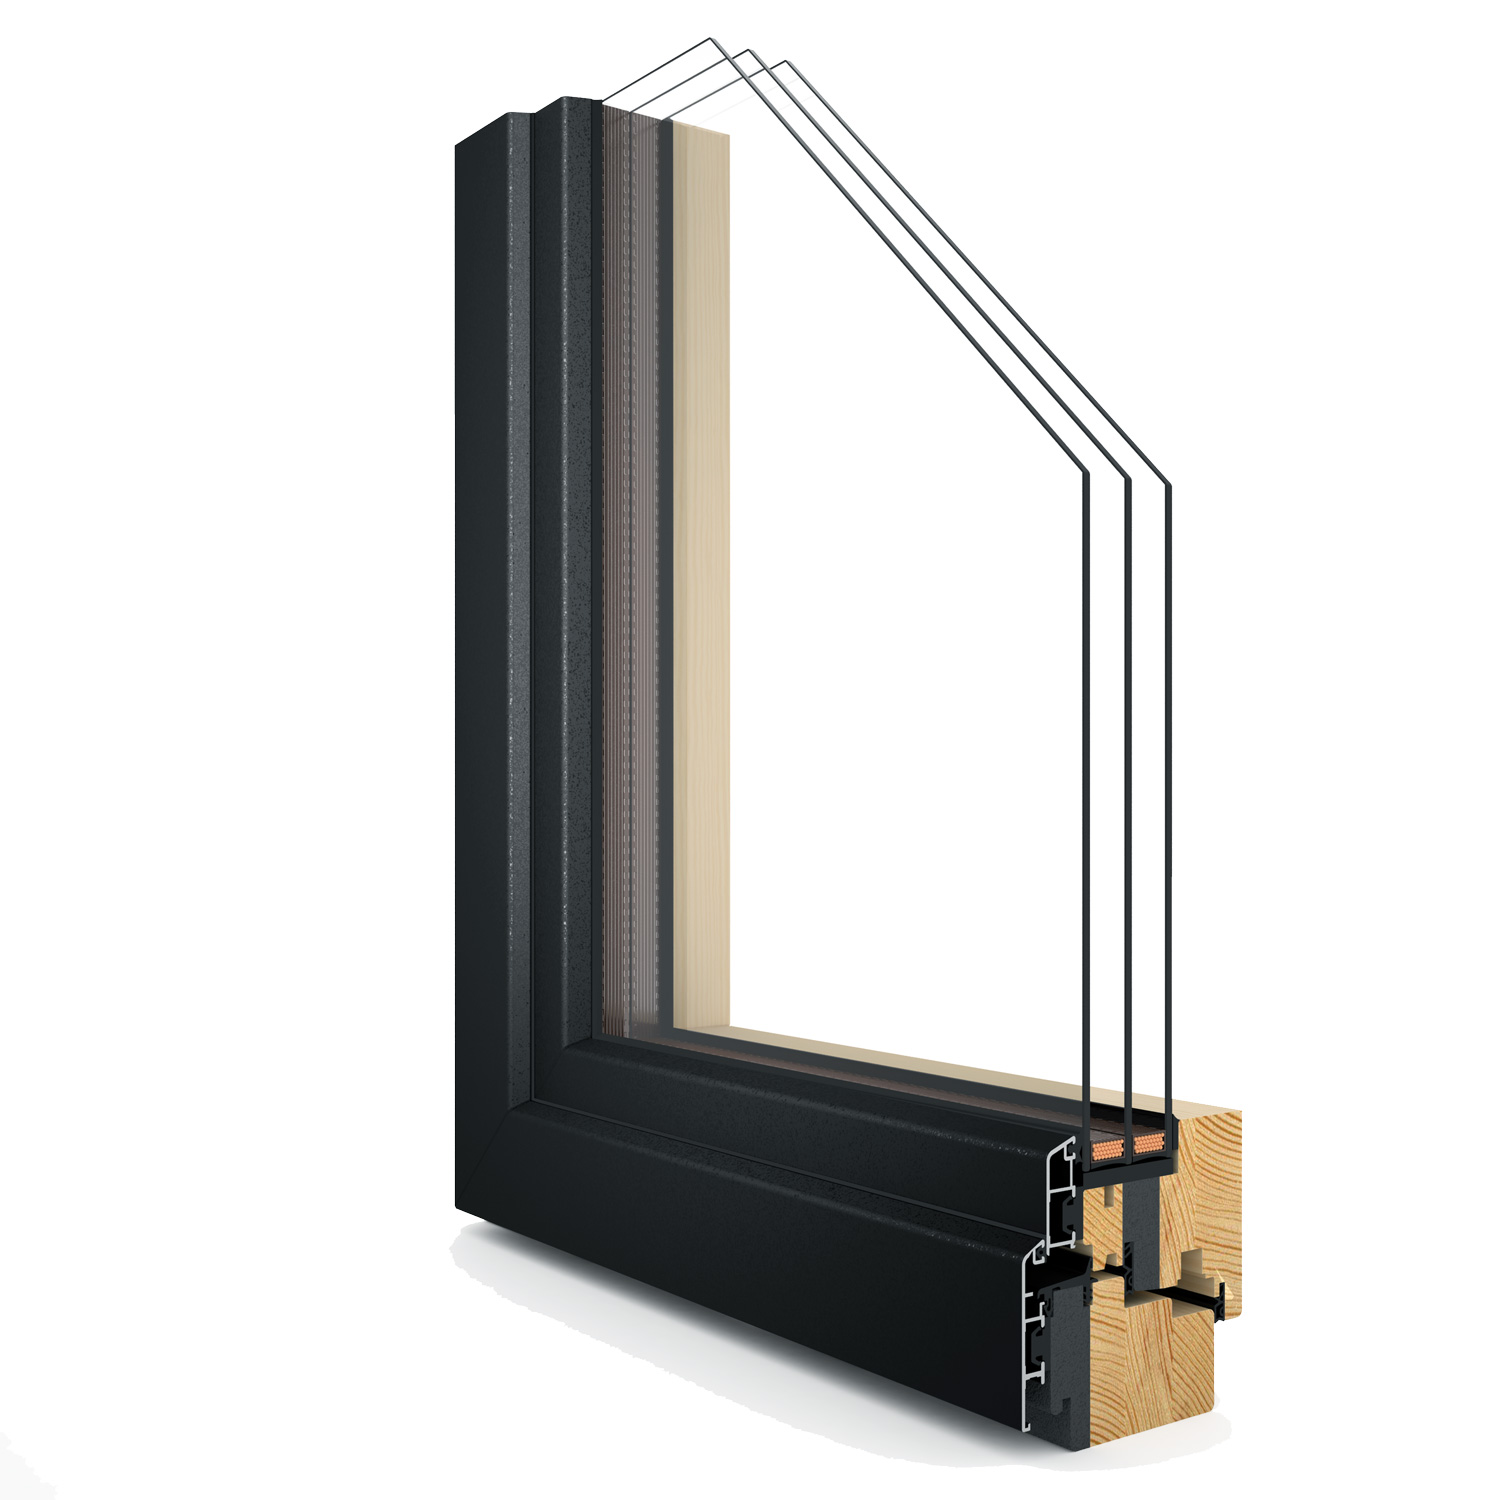 R-8 Zola ThermoPlus Clad™ Passive House window rendering